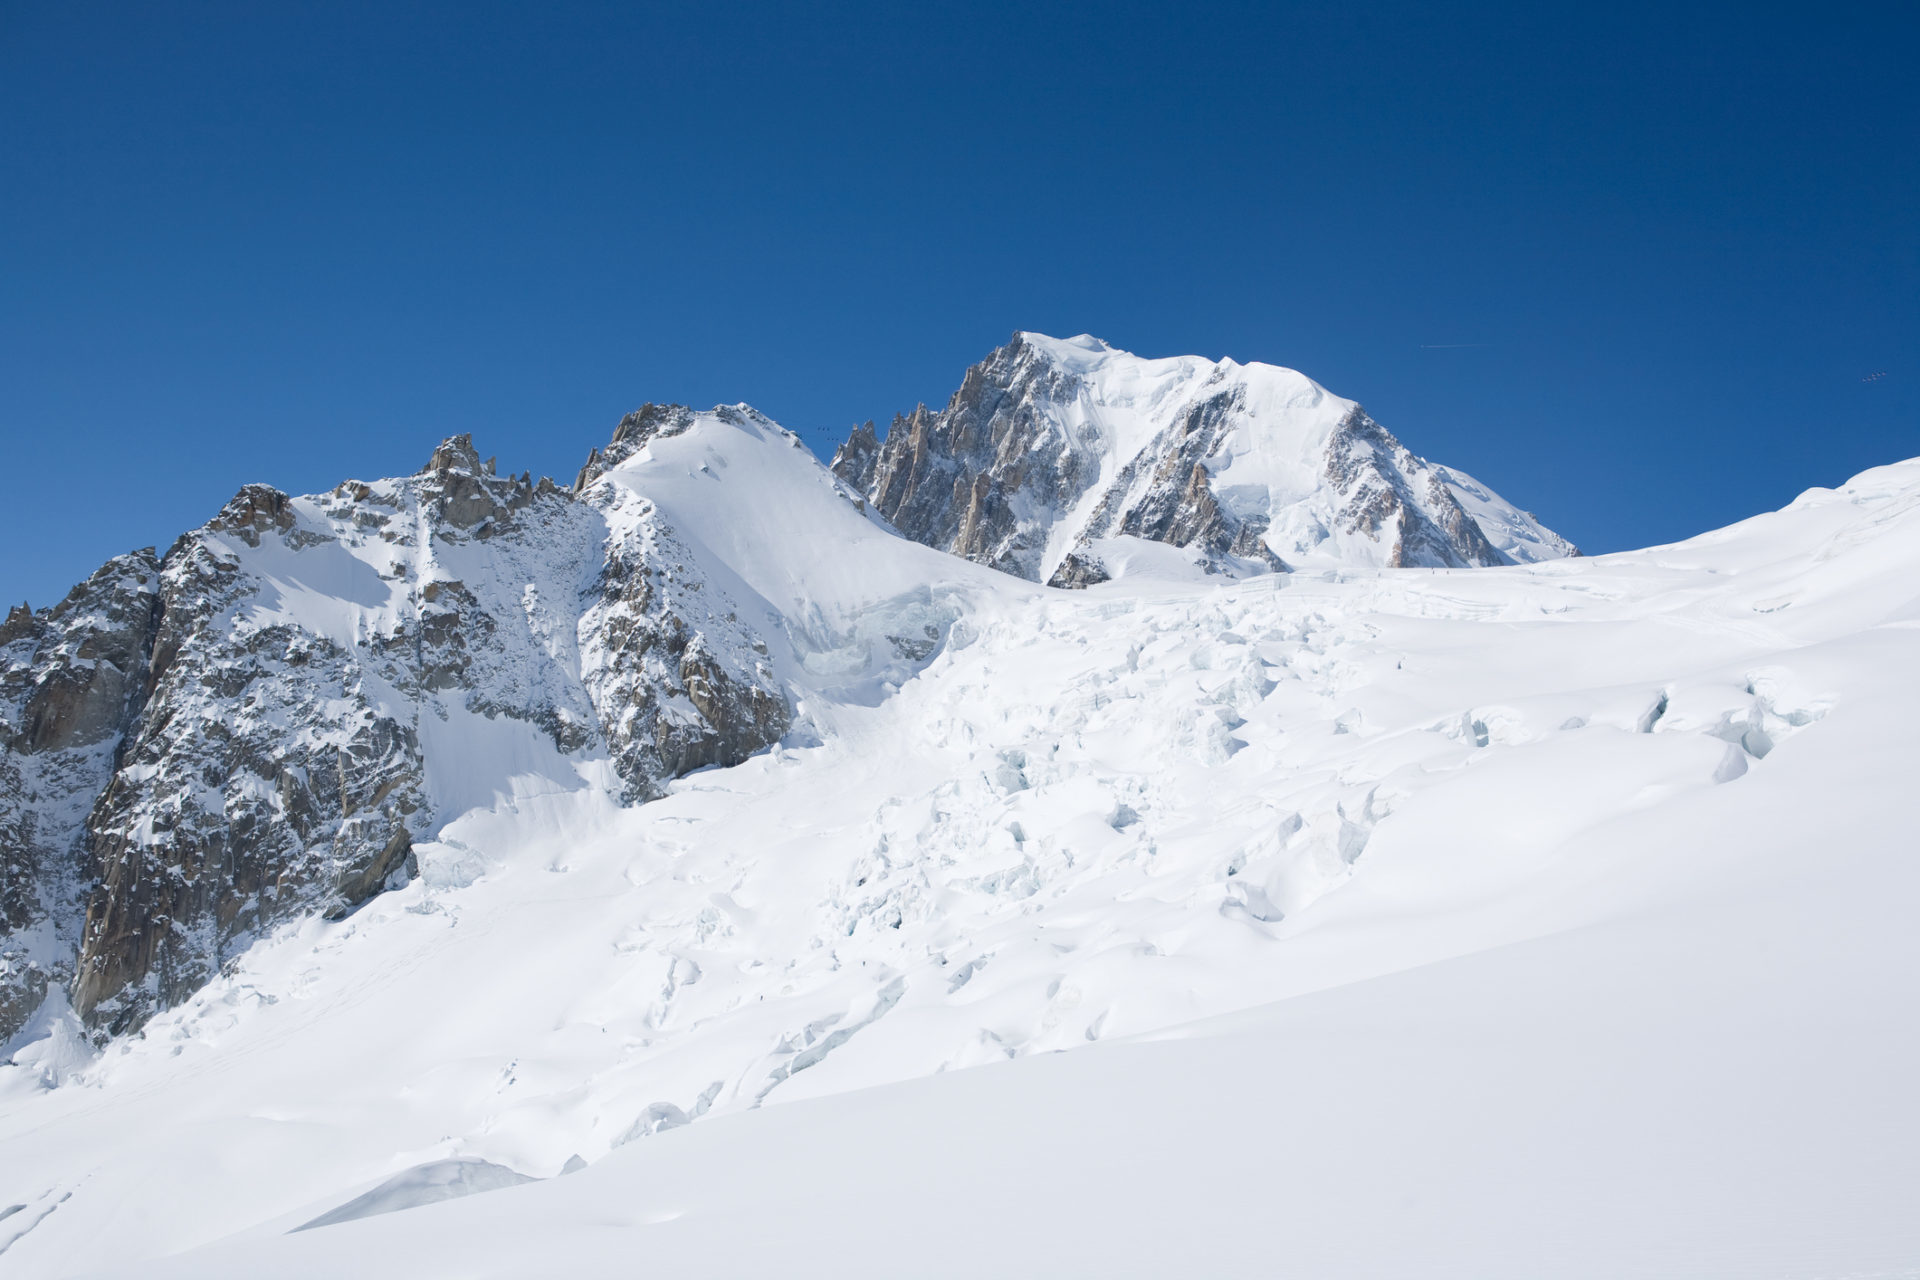 Backcountry skiing in La Vallee Blanche